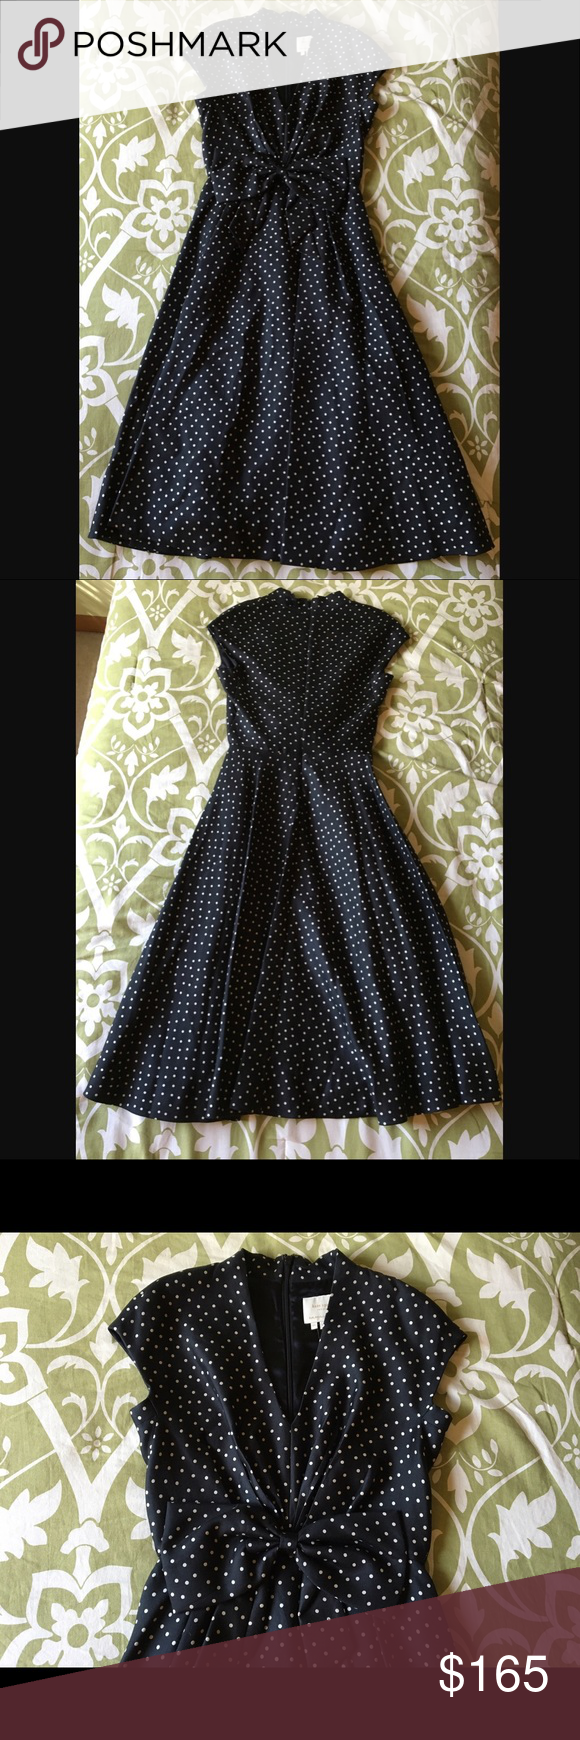 Kate Spade Freesia Dot Dress Polka dots, waist-hugging construction, and a swingy skirt give this kate spade new york dress time-honored appeal. Black with cream polka dots. V neckline; cap sleeves. Knotted, gathered at natural waist. Pleated A-line skirt. Cotton/silk; acetate satin lining. Imported. Non Smoking home with one dog. Tacking thread on one corner of the bow came out, (pictured) easy fix but not noticeable if it is not fixed. kate spade Dresses Midi